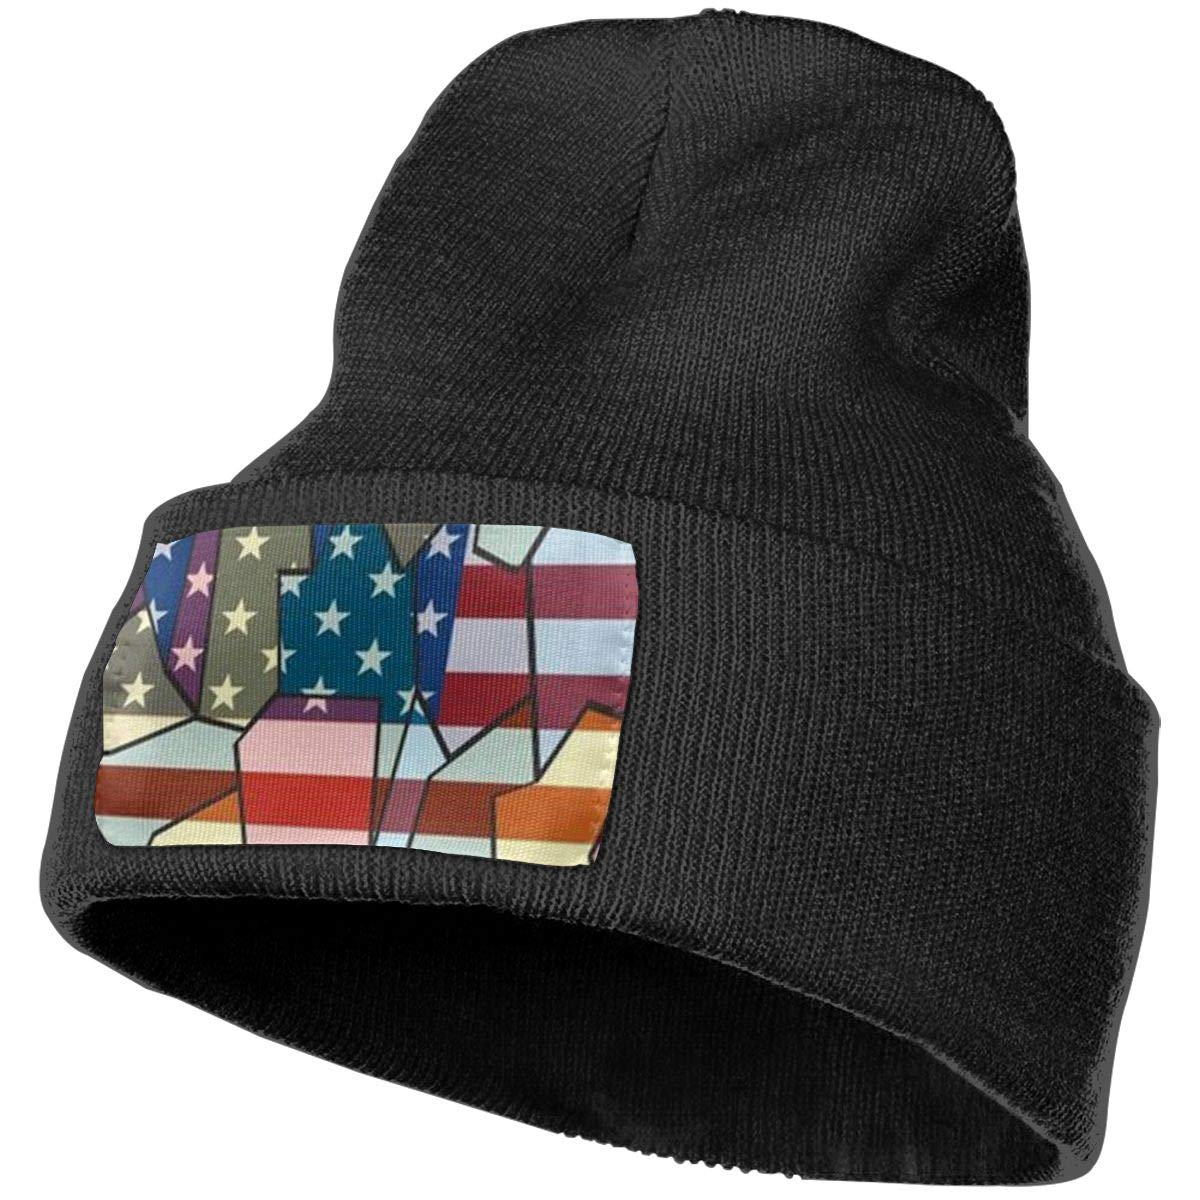 Horizon-t Star America Unisex 100/% Acrylic Knitting Hat Cap Fashion Beanie Hat